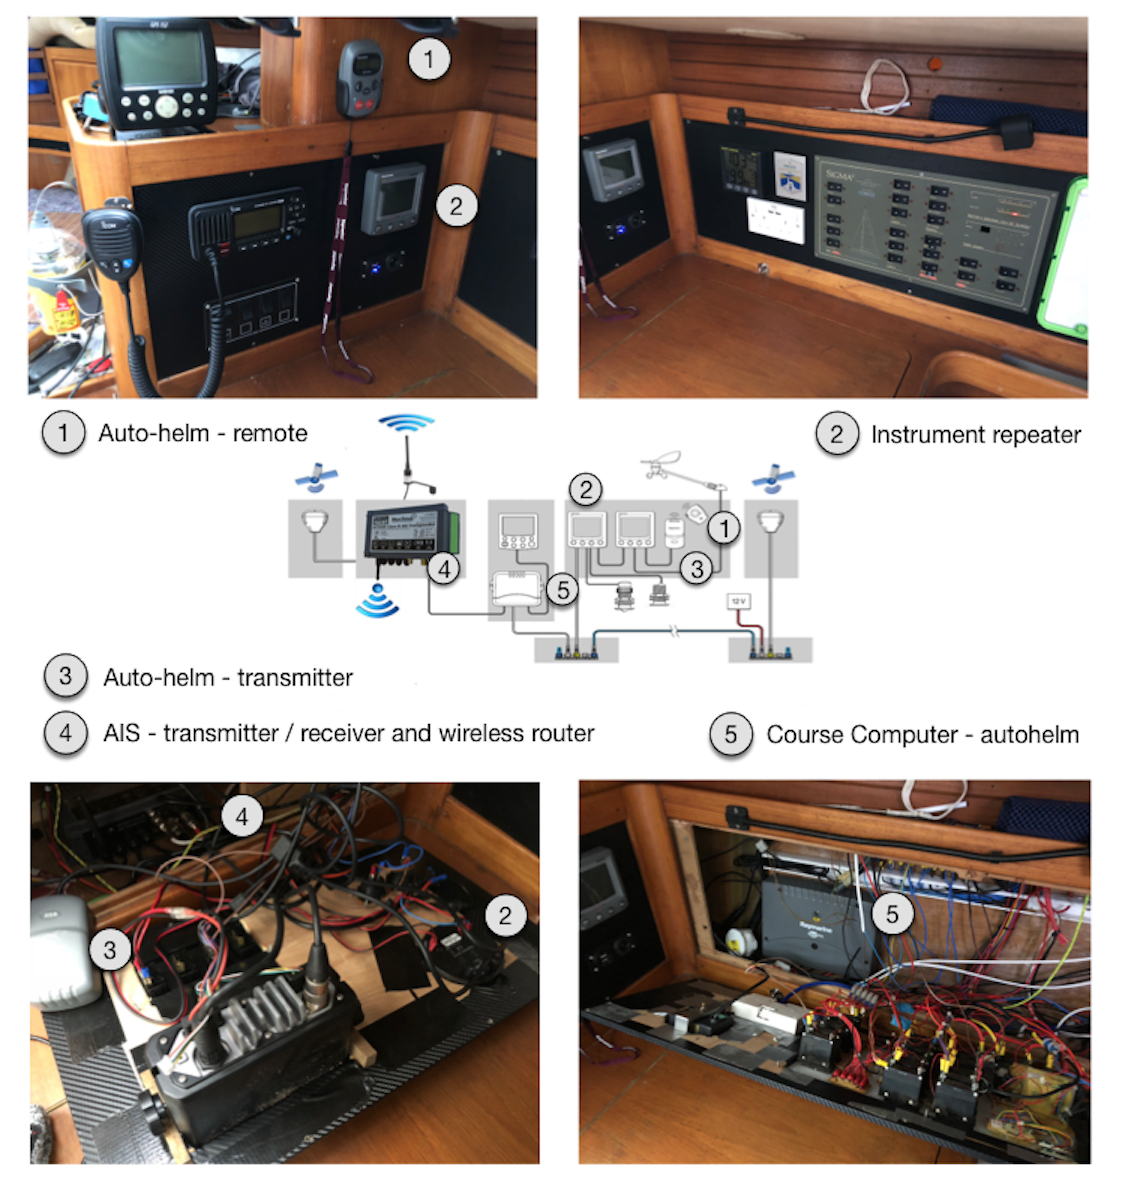 Real Time Sailing Yacht Performance Stepping Back A Bit Part 11 Ais Gps Wiring Diagram Chart Table And We Have Access To The Navigation Lights Cabin Lighting Battery Sensors Dsc Vhf Top Left Image Also Shows Spare Garmin